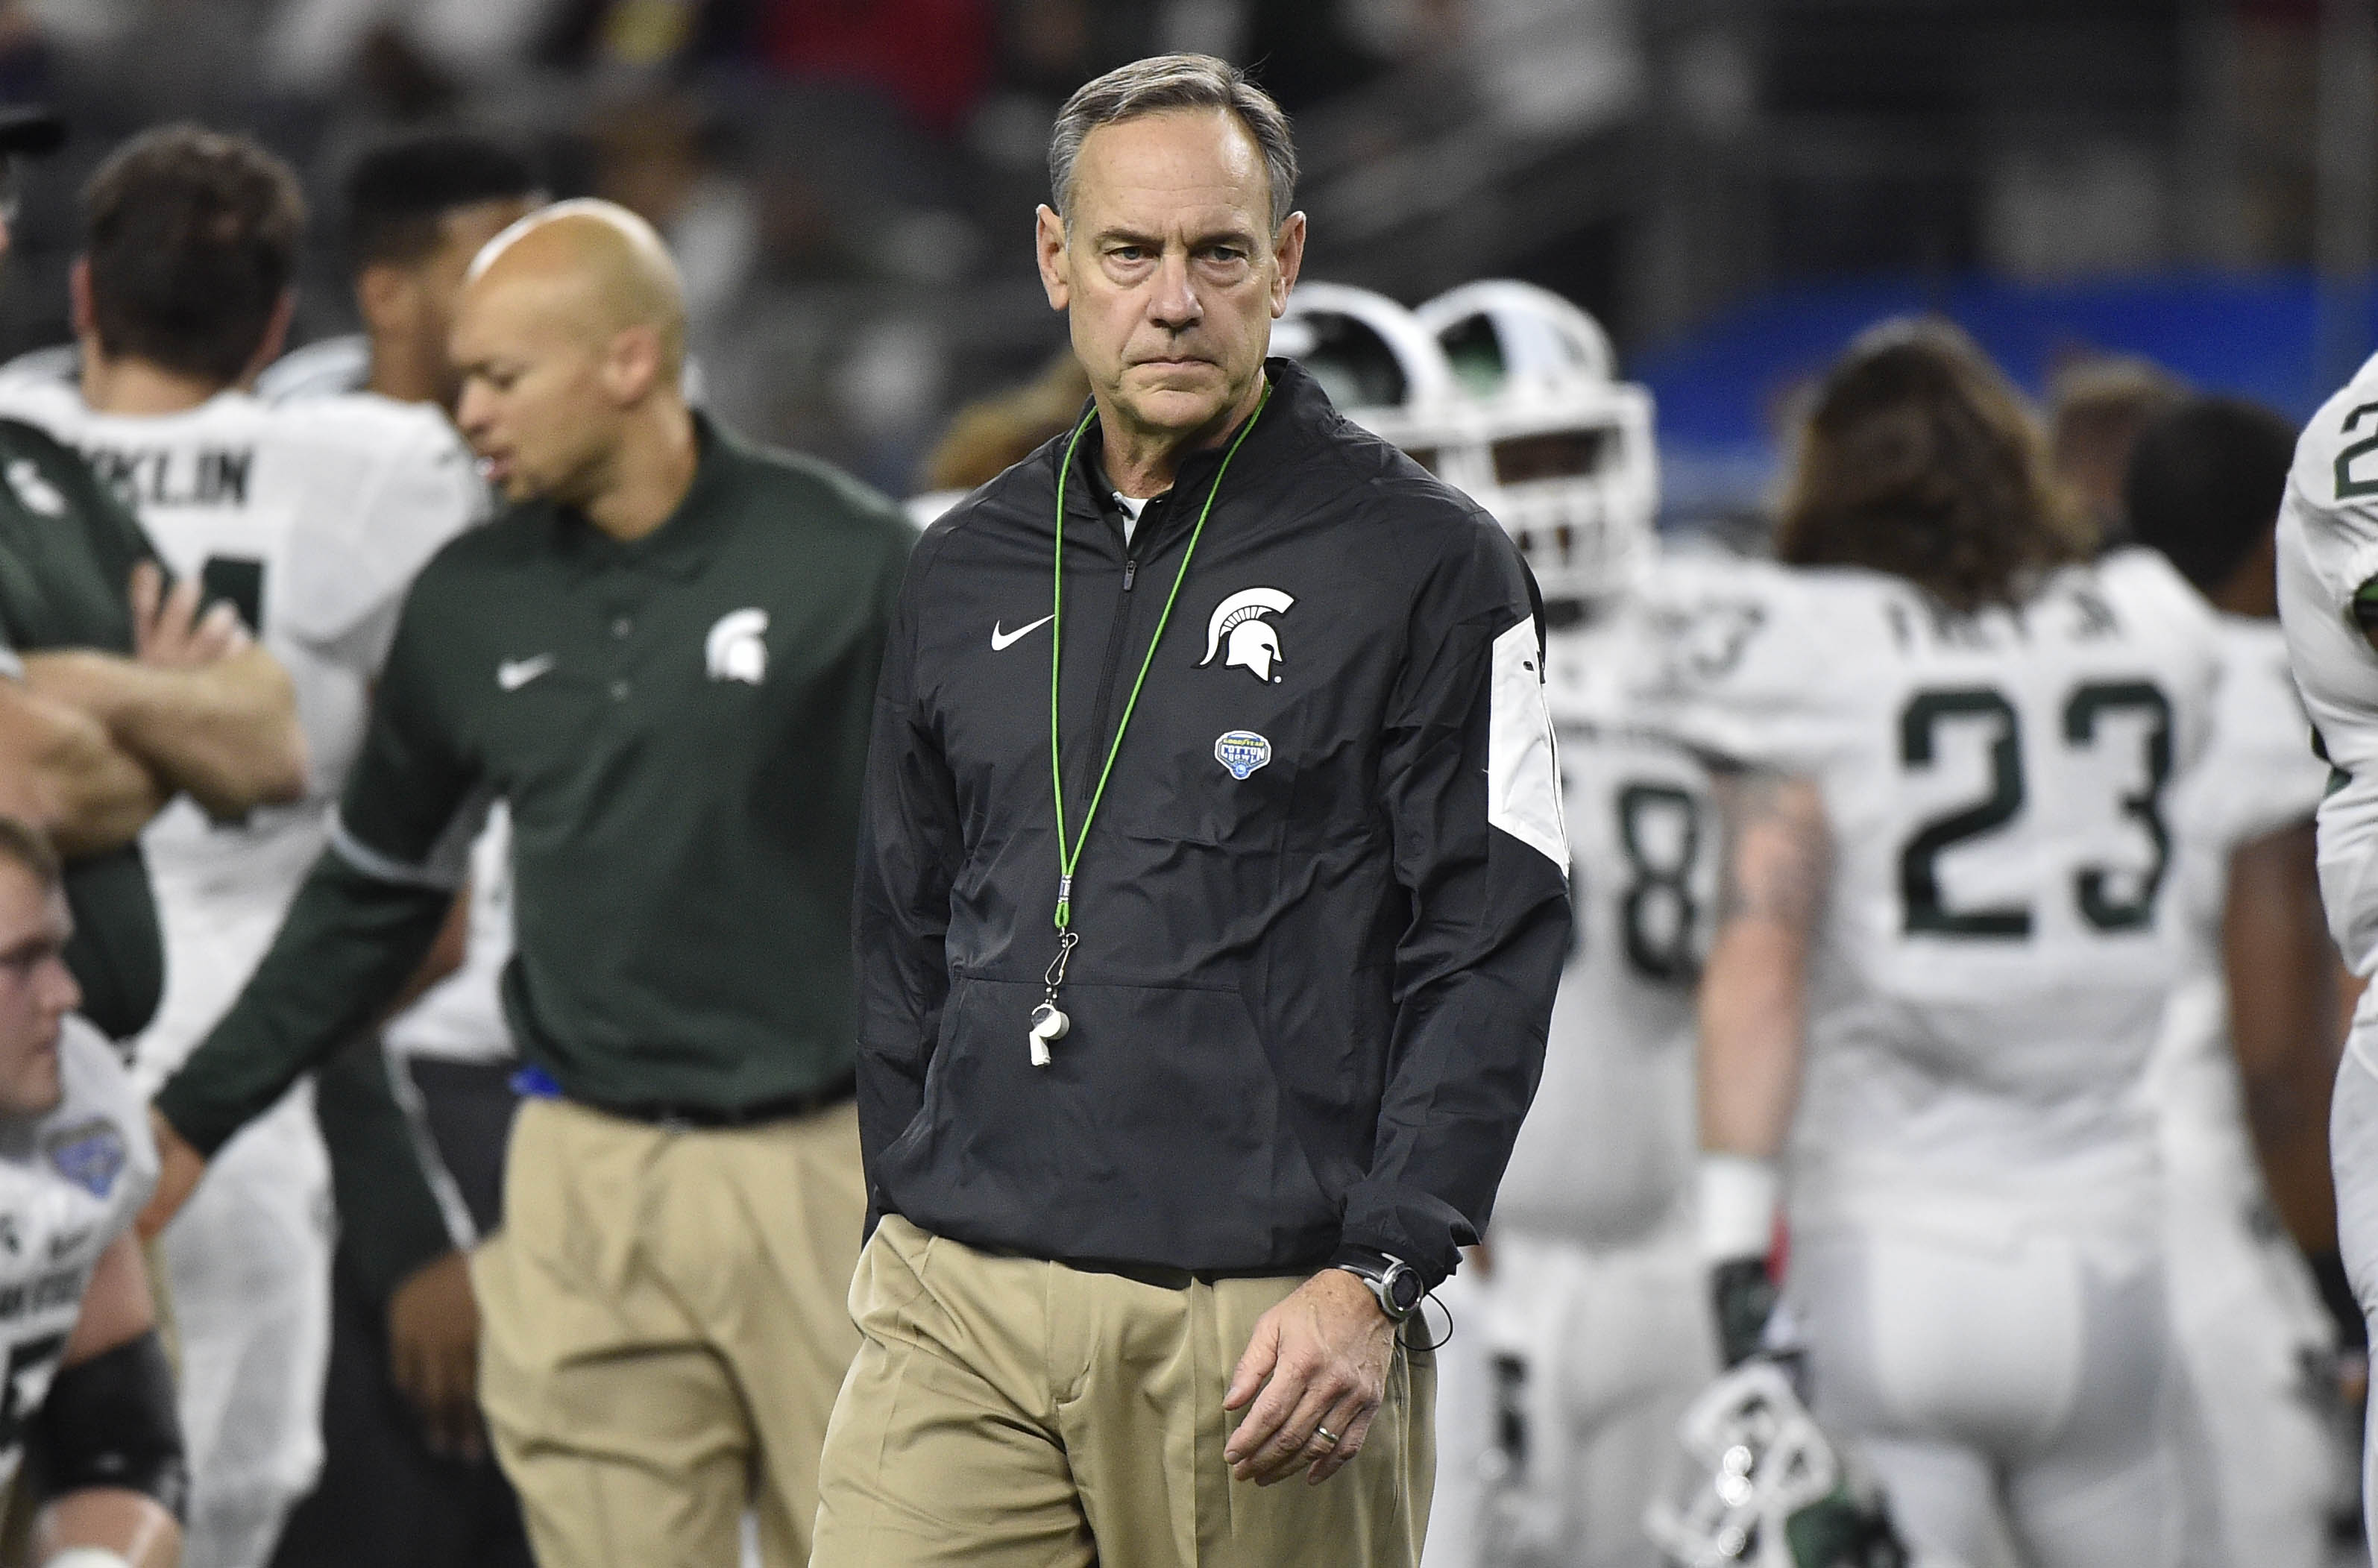 Dec 31, 2015; Arlington, TX, USA; Michigan State Spartans head coach Mark Dantonio looks on during warm-ups prior to the game Alabama Crimson Tide in the 2015 CFP semifinal at the Cotton Bowl at AT&T Stadium. Mandatory Credit: Jerome Miron-USA TODAY Sports